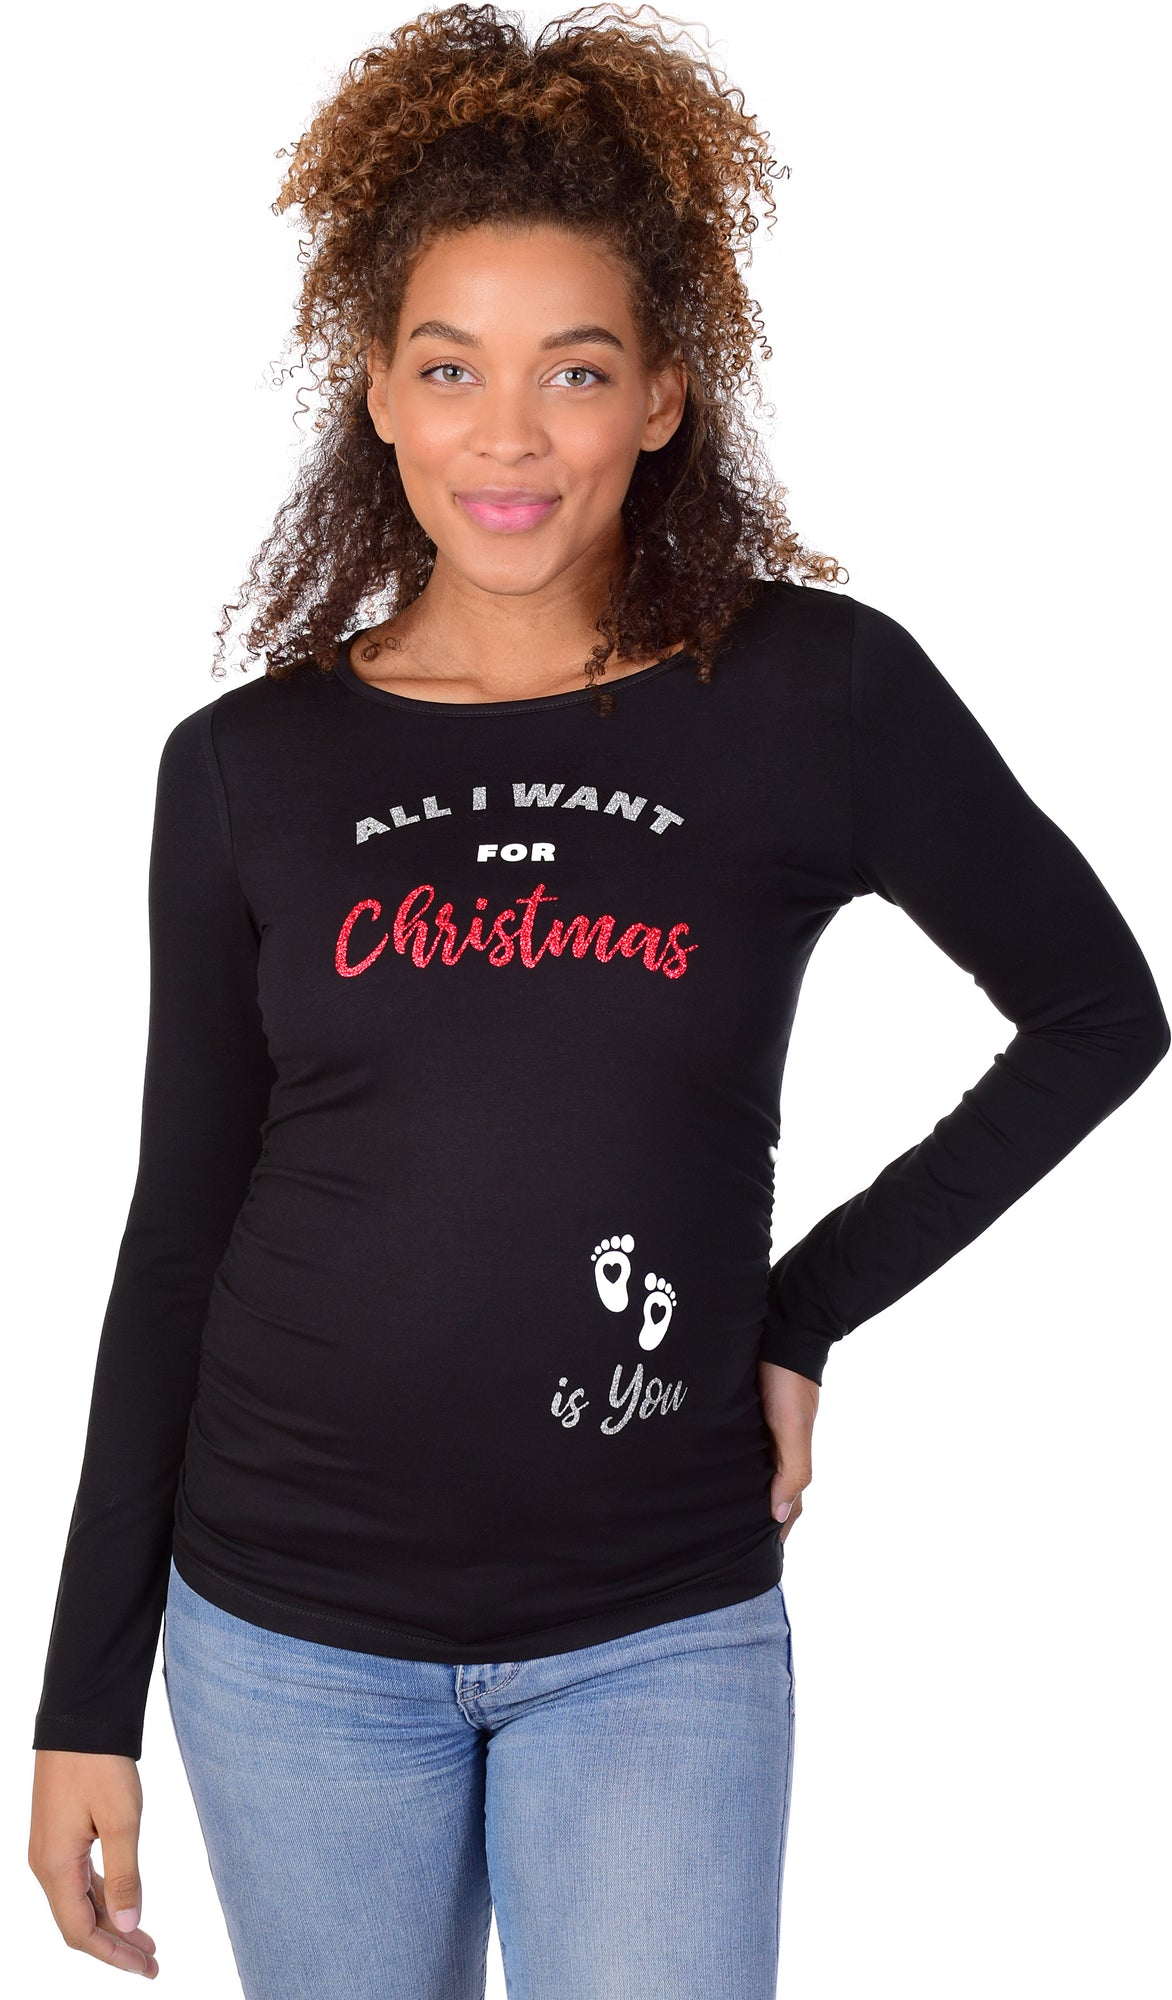 All I Want for Christmas is You Baby Maternity Graphic Tee